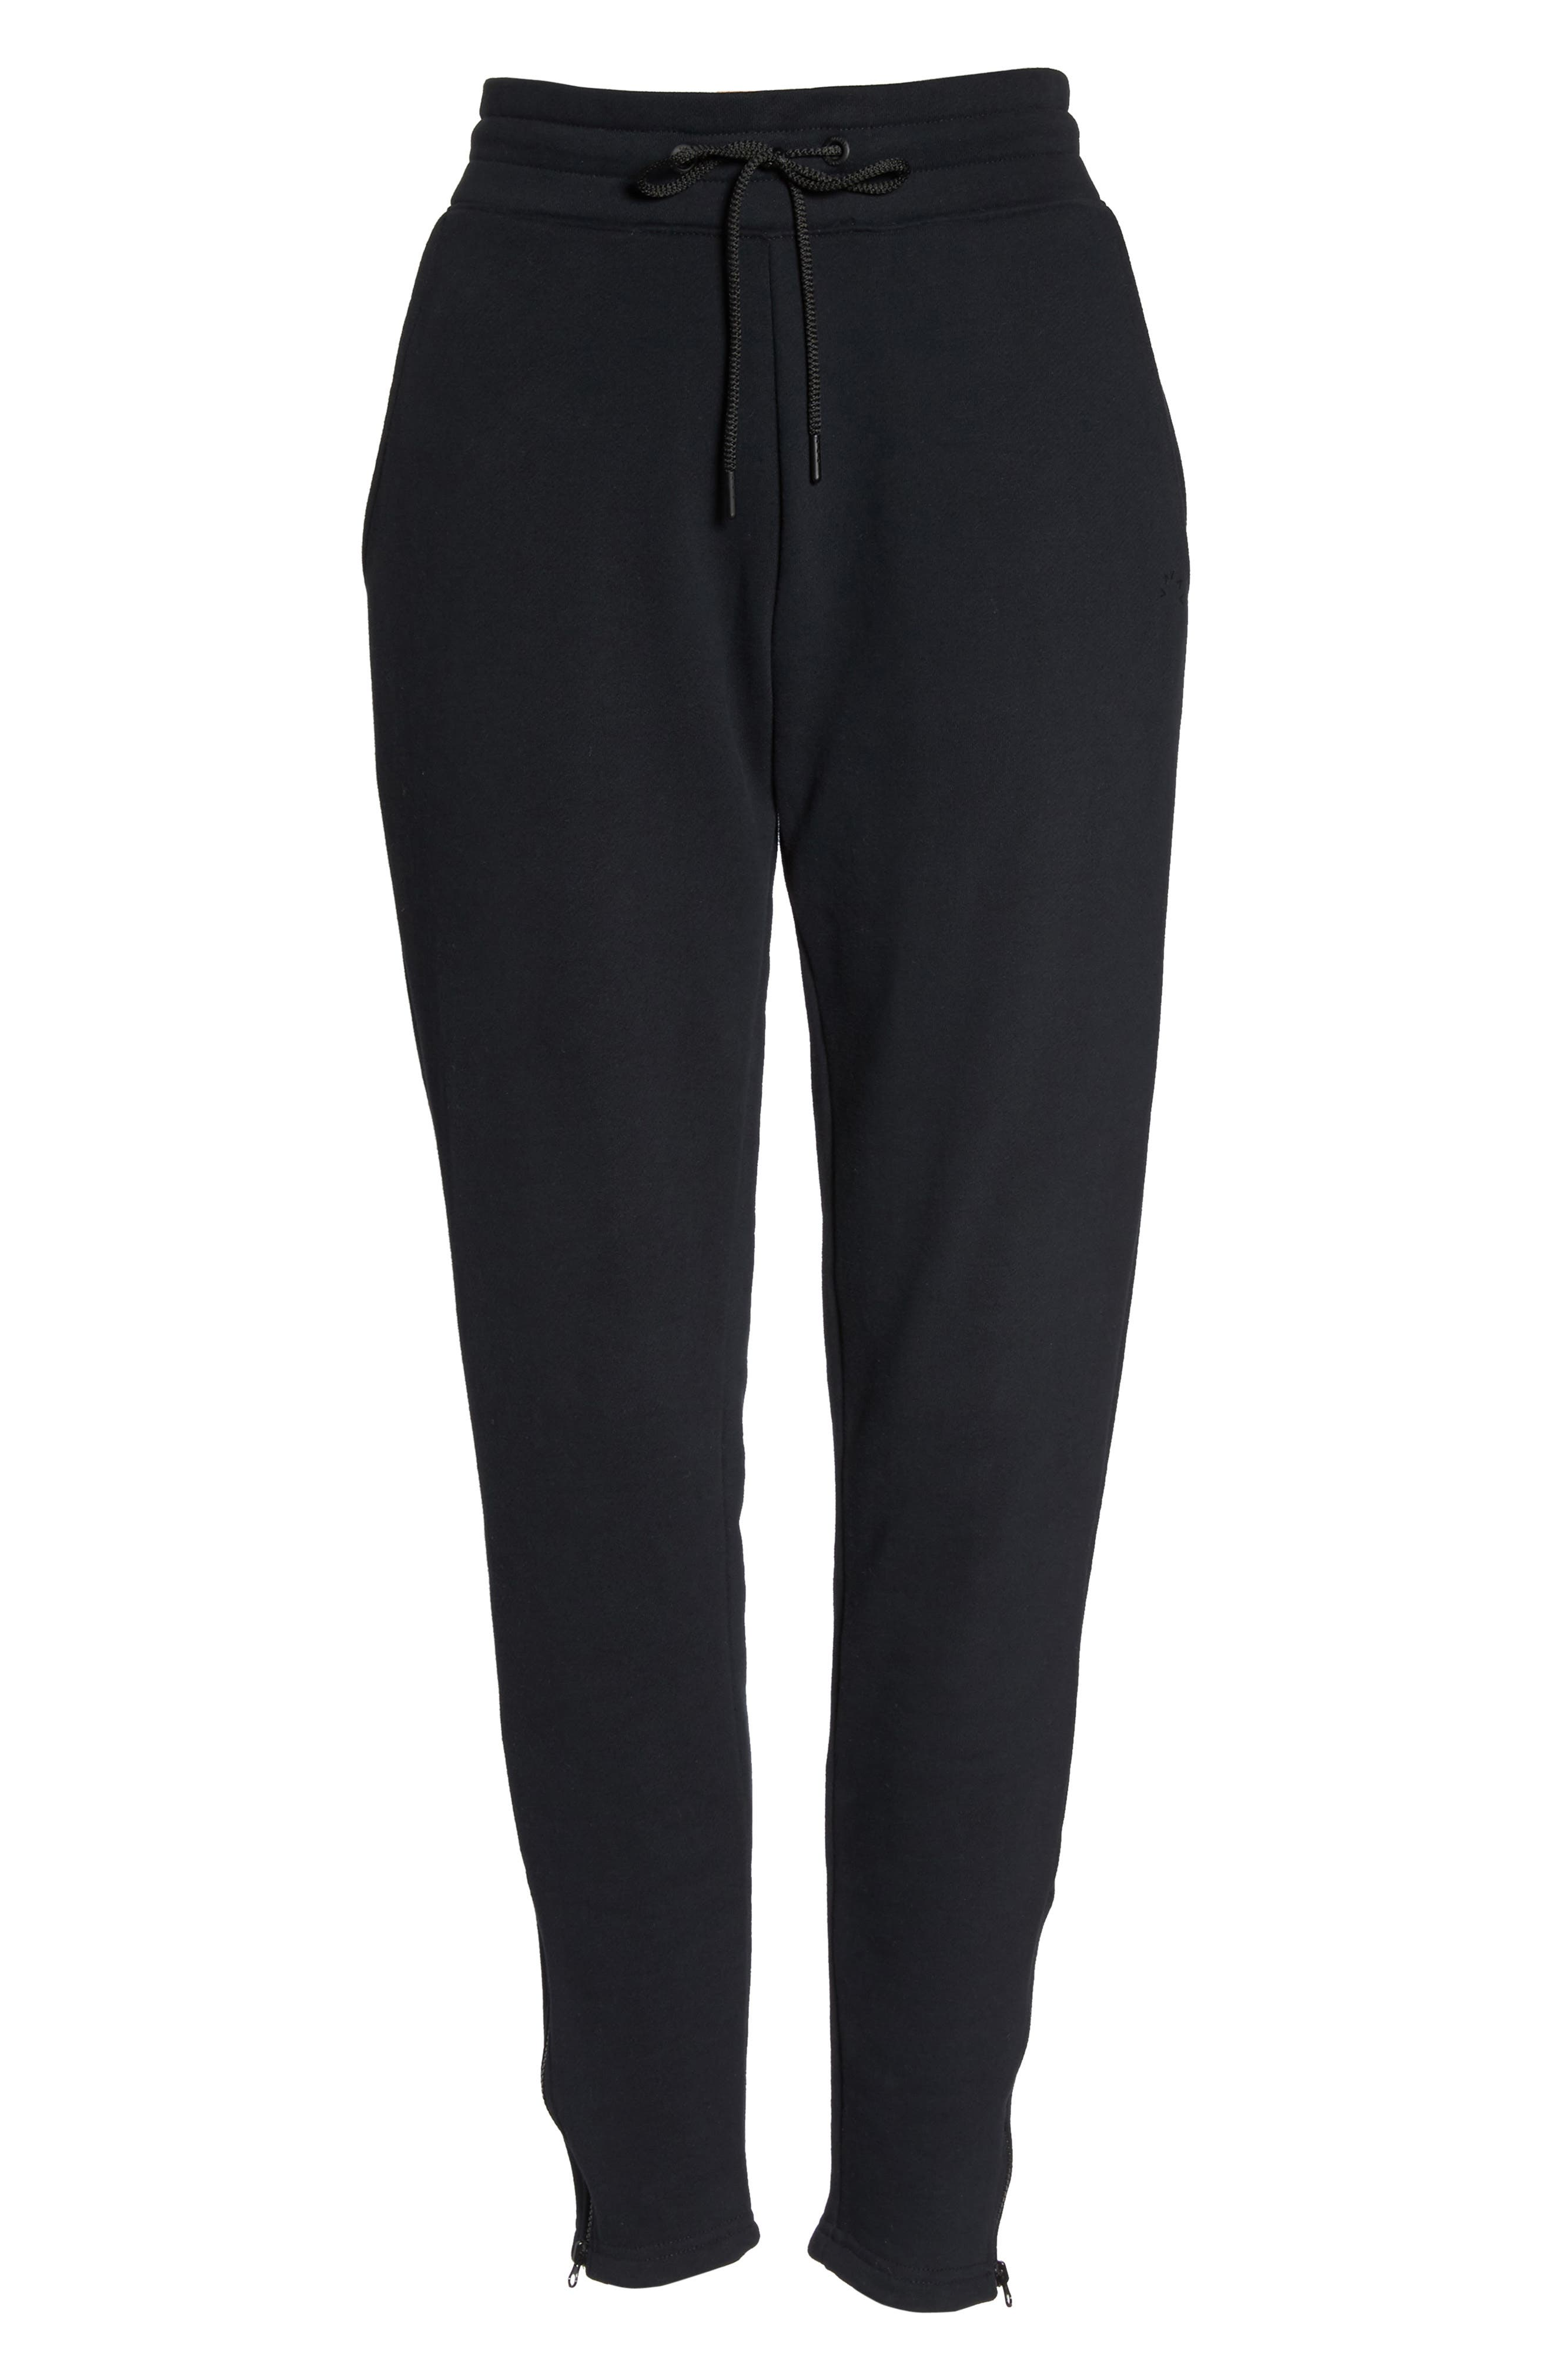 Finley Track Pants,                             Alternate thumbnail 7, color,                             001